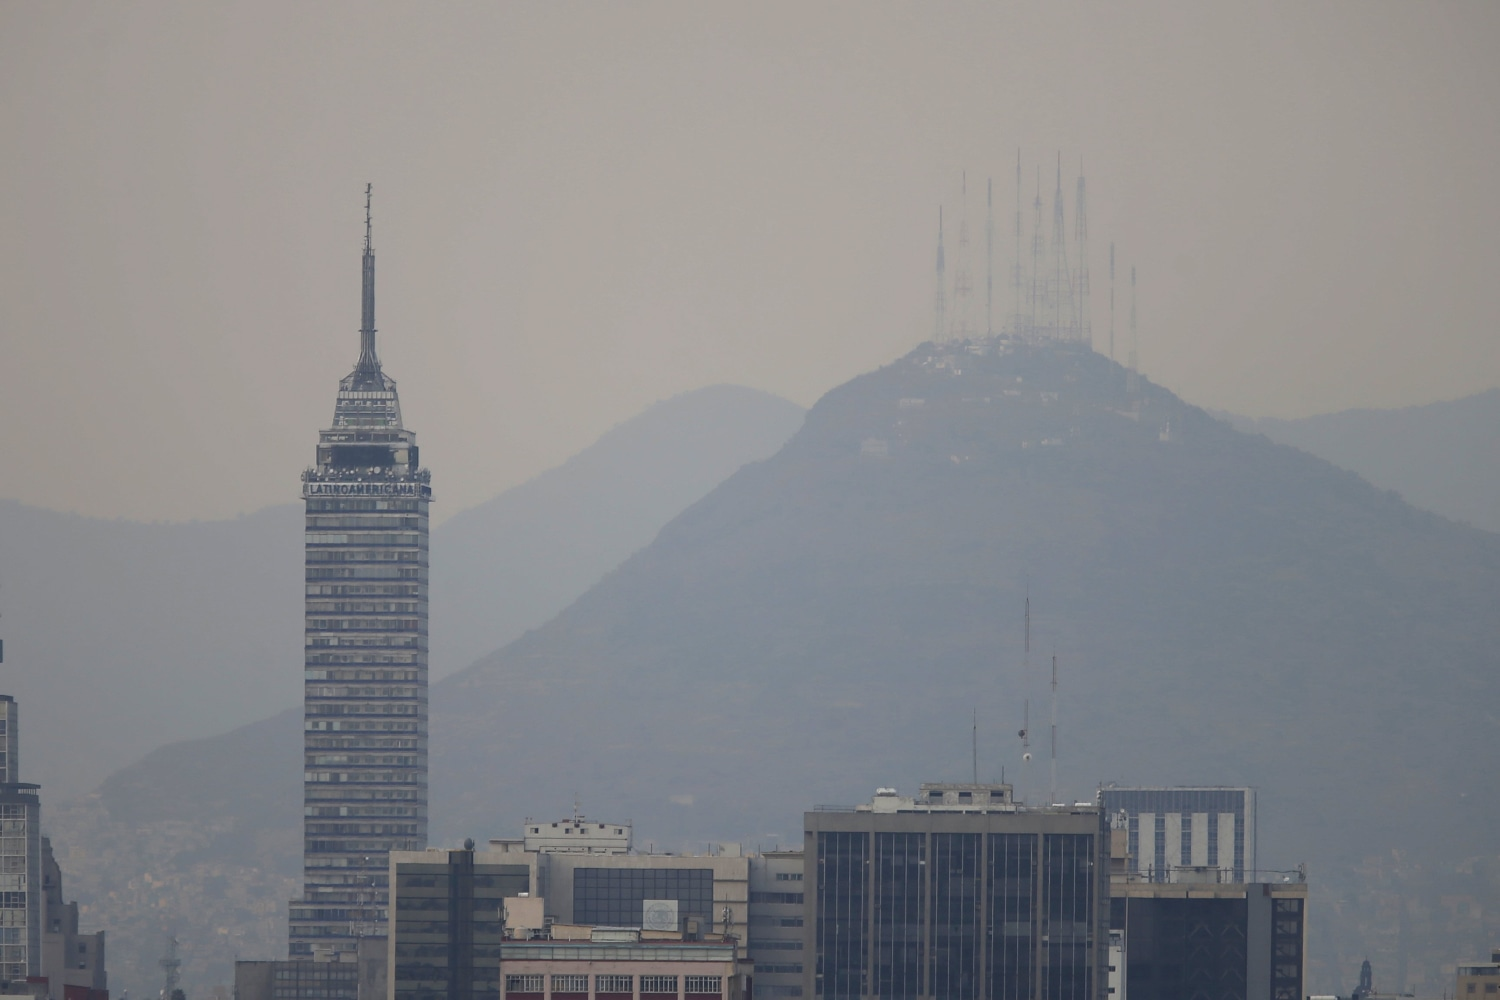 Researchers to study air pollution near Mexico City